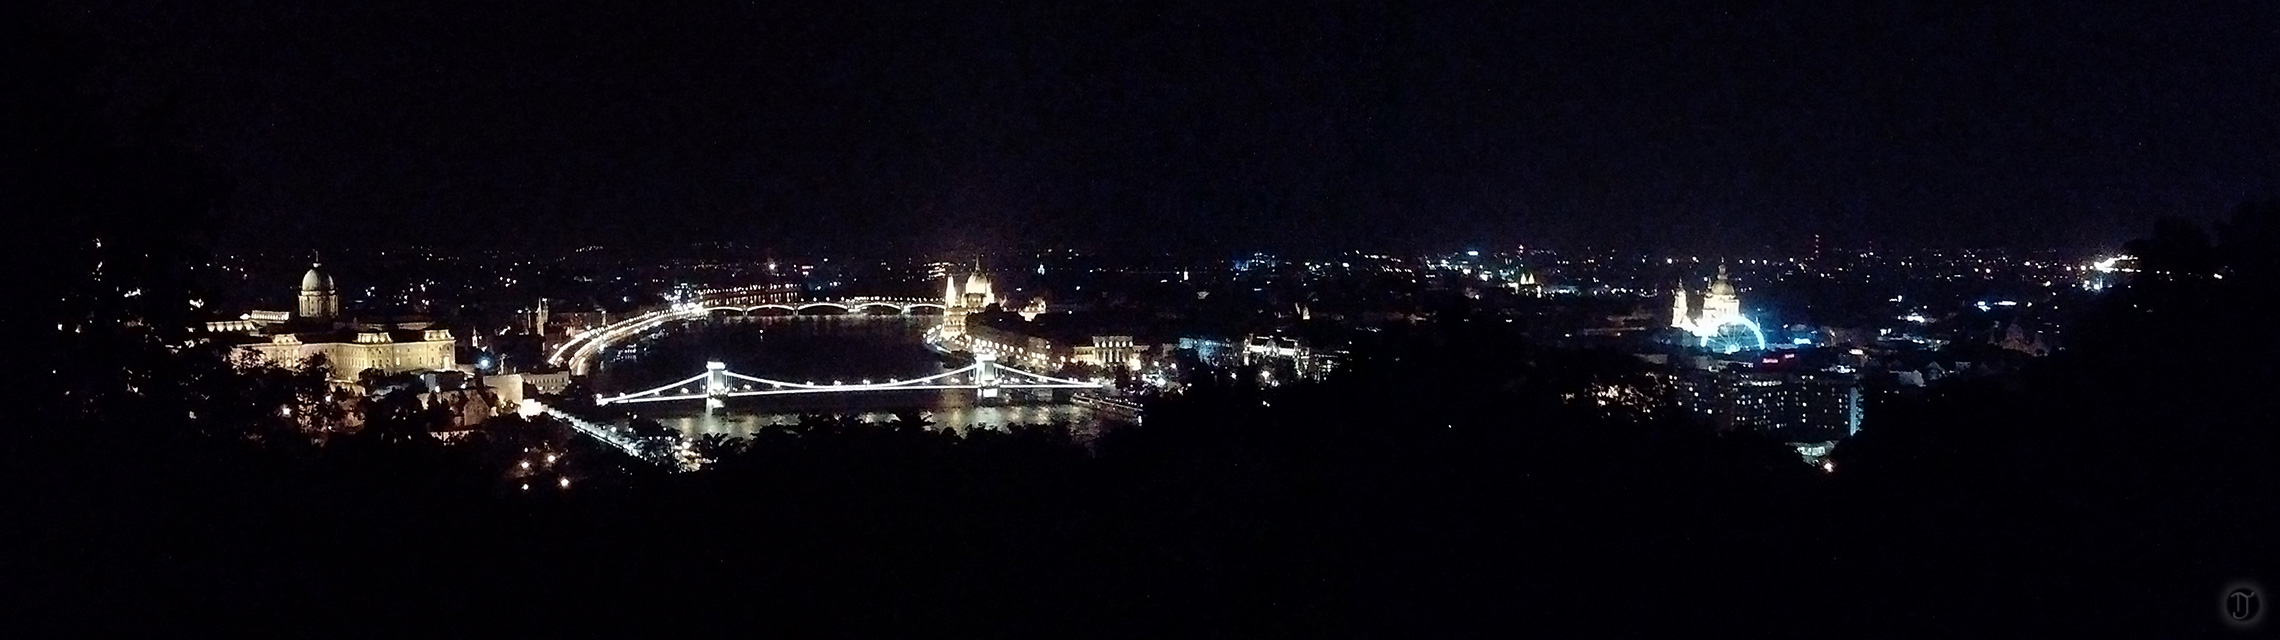 Budapest Panorama at Night